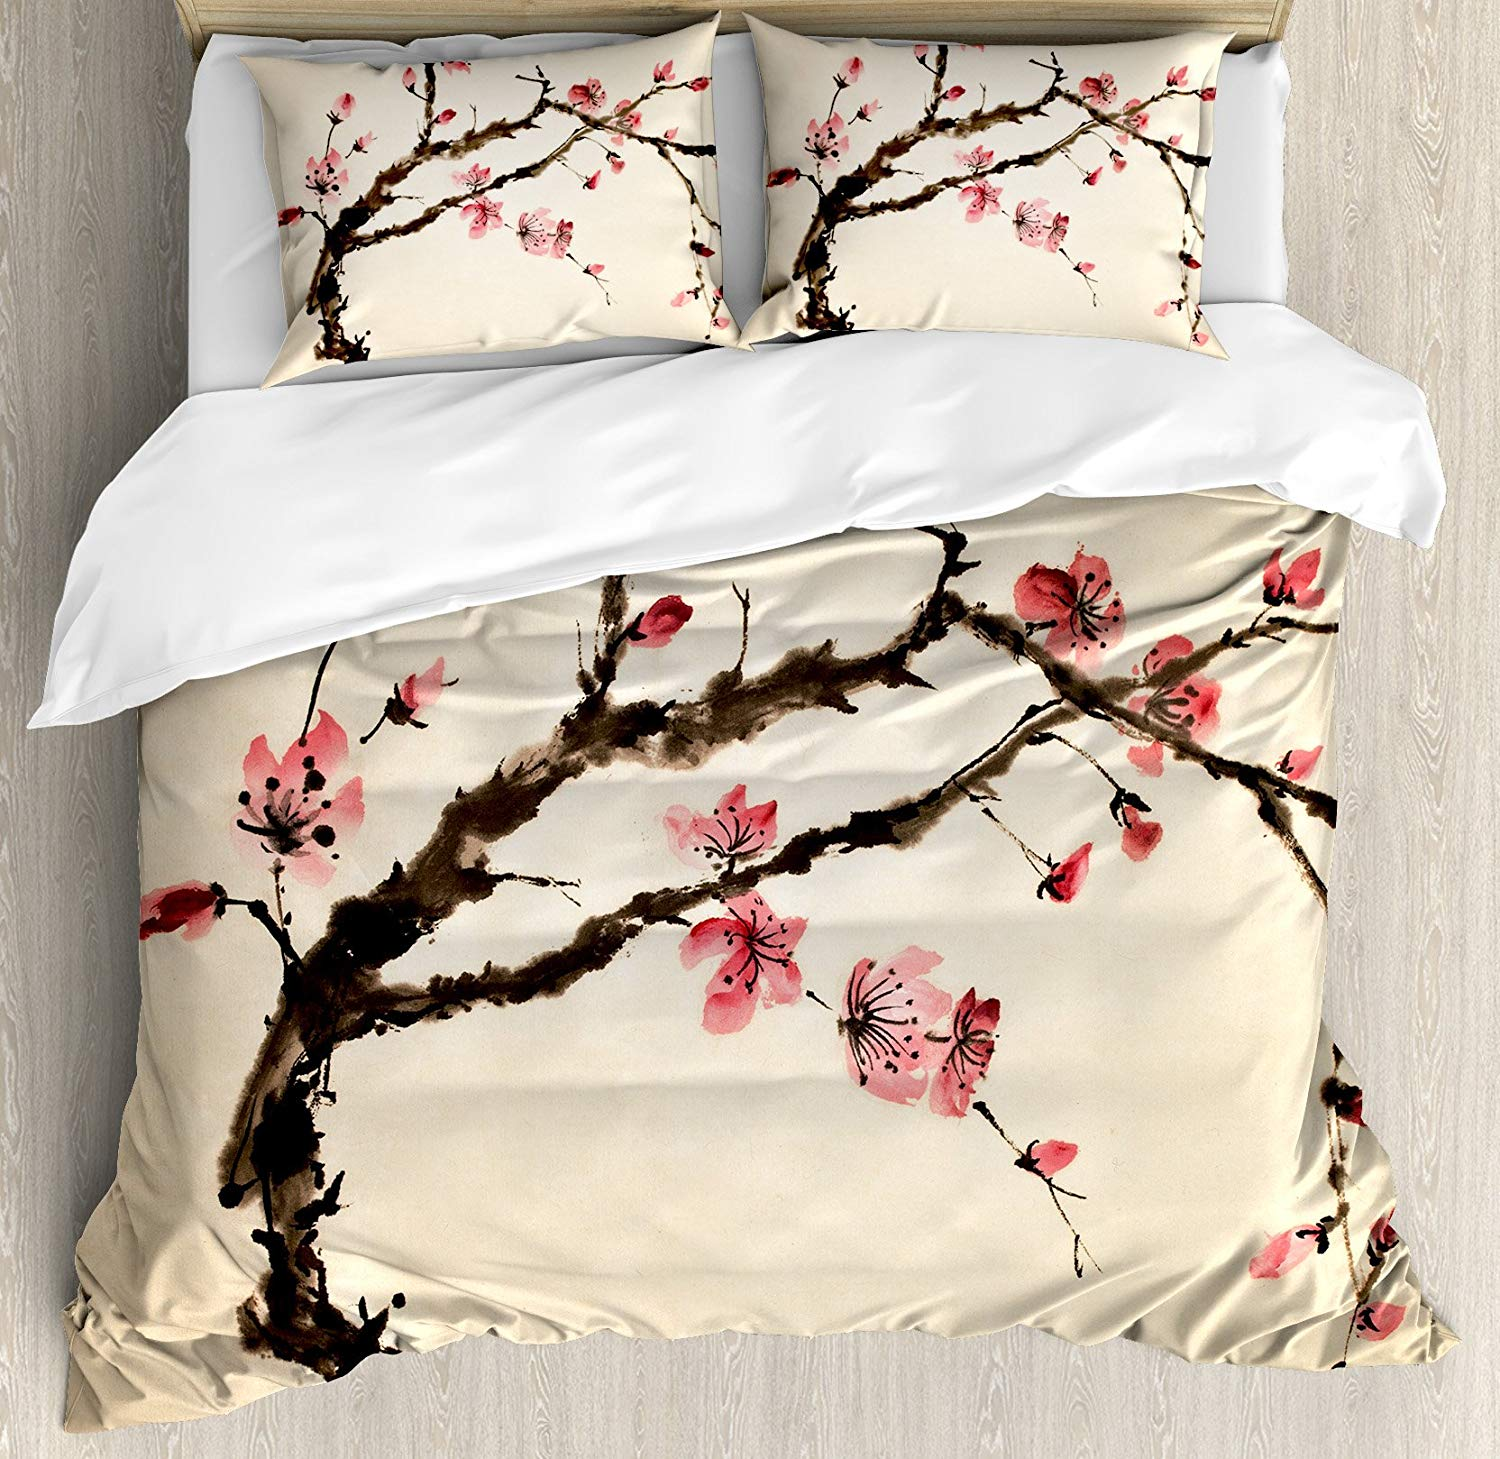 Japanese Duvet Cover Set Queen Size Traditional Chinese Paint of Figural Tree with Details Brushstroke Effects